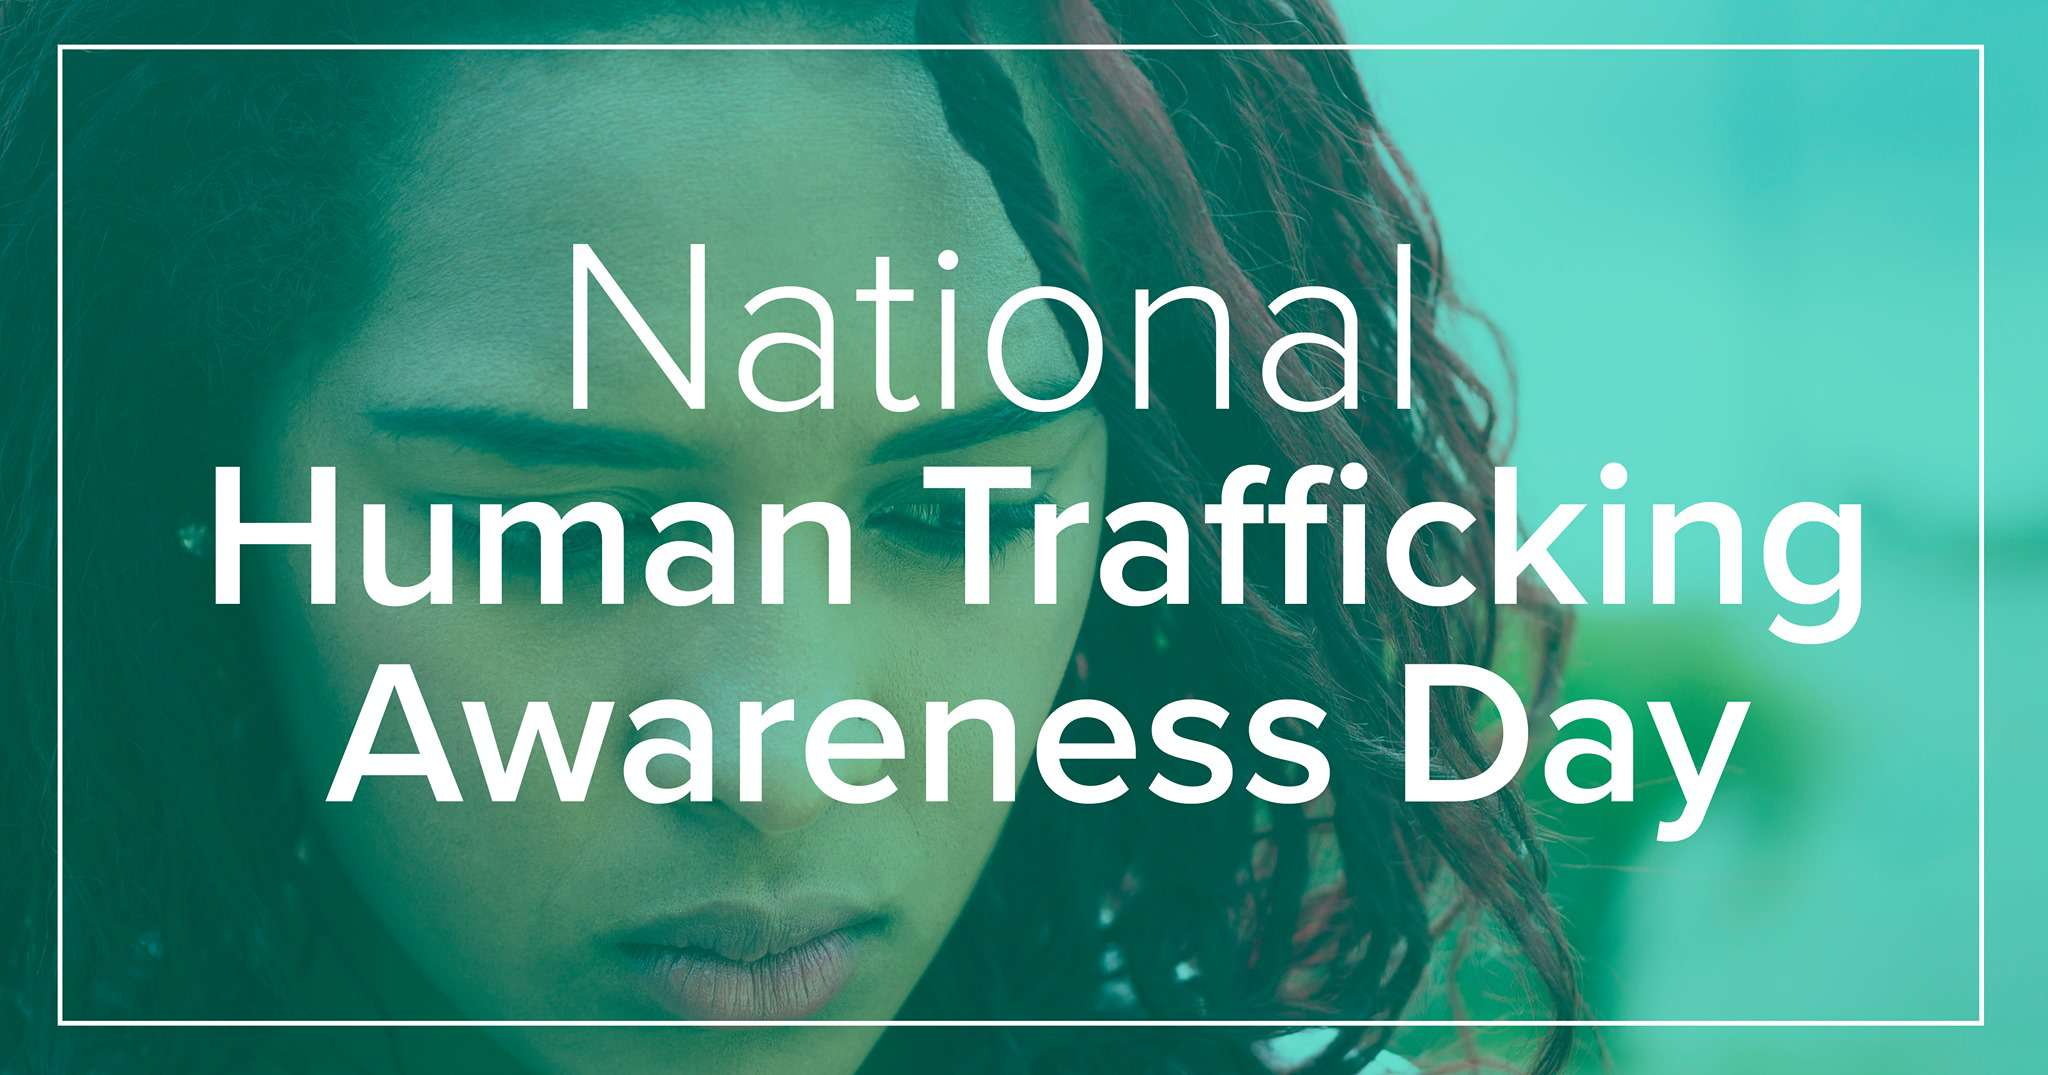 National Human Trafficking Awareness Day Wishes Sweet Images